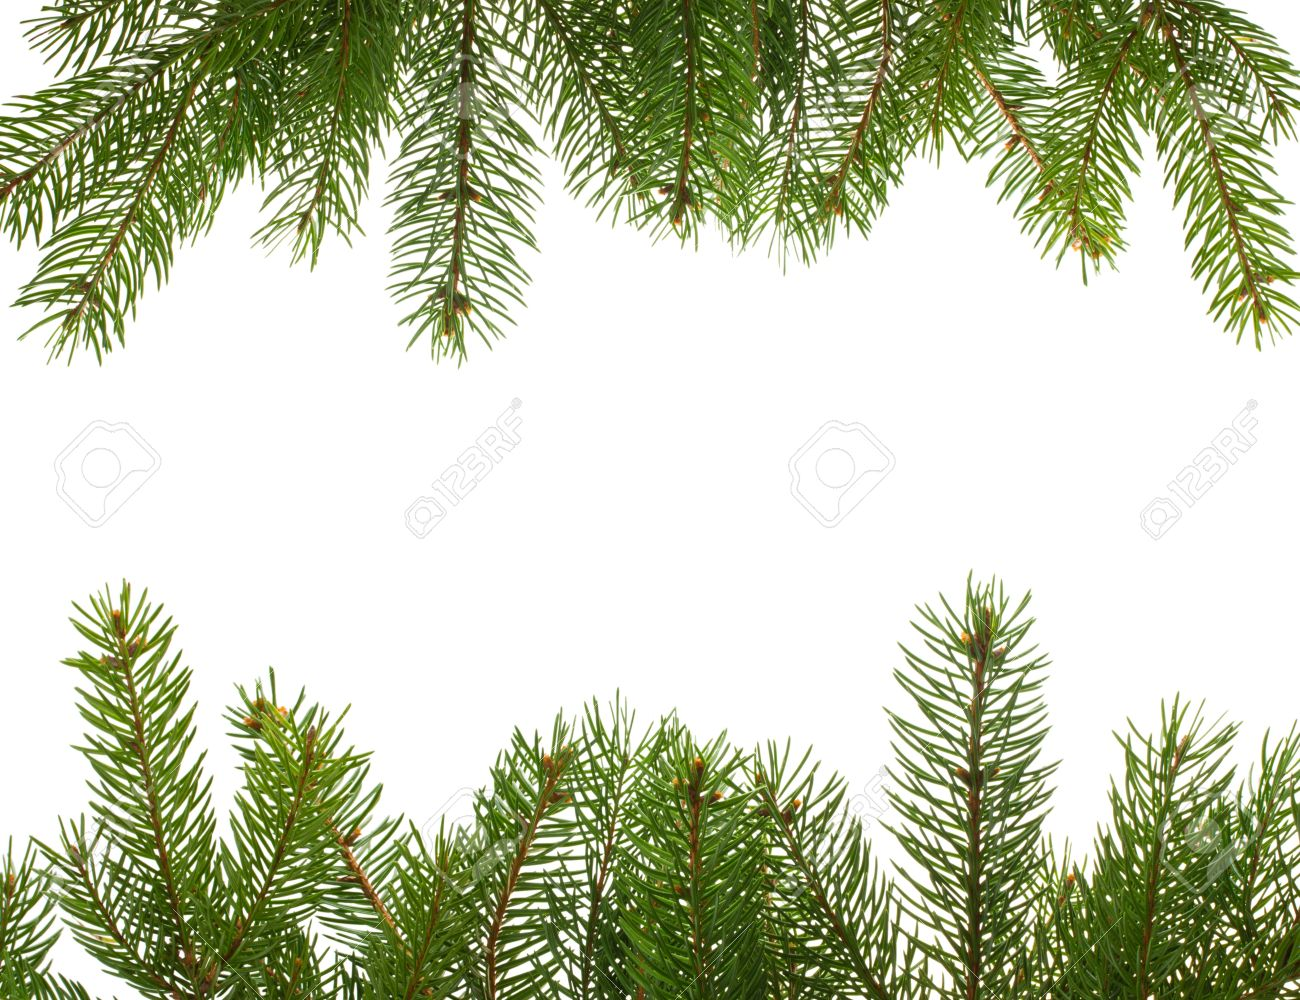 Pine Boughs Images & Stock Pictures. Royalty Free Pine Boughs ...